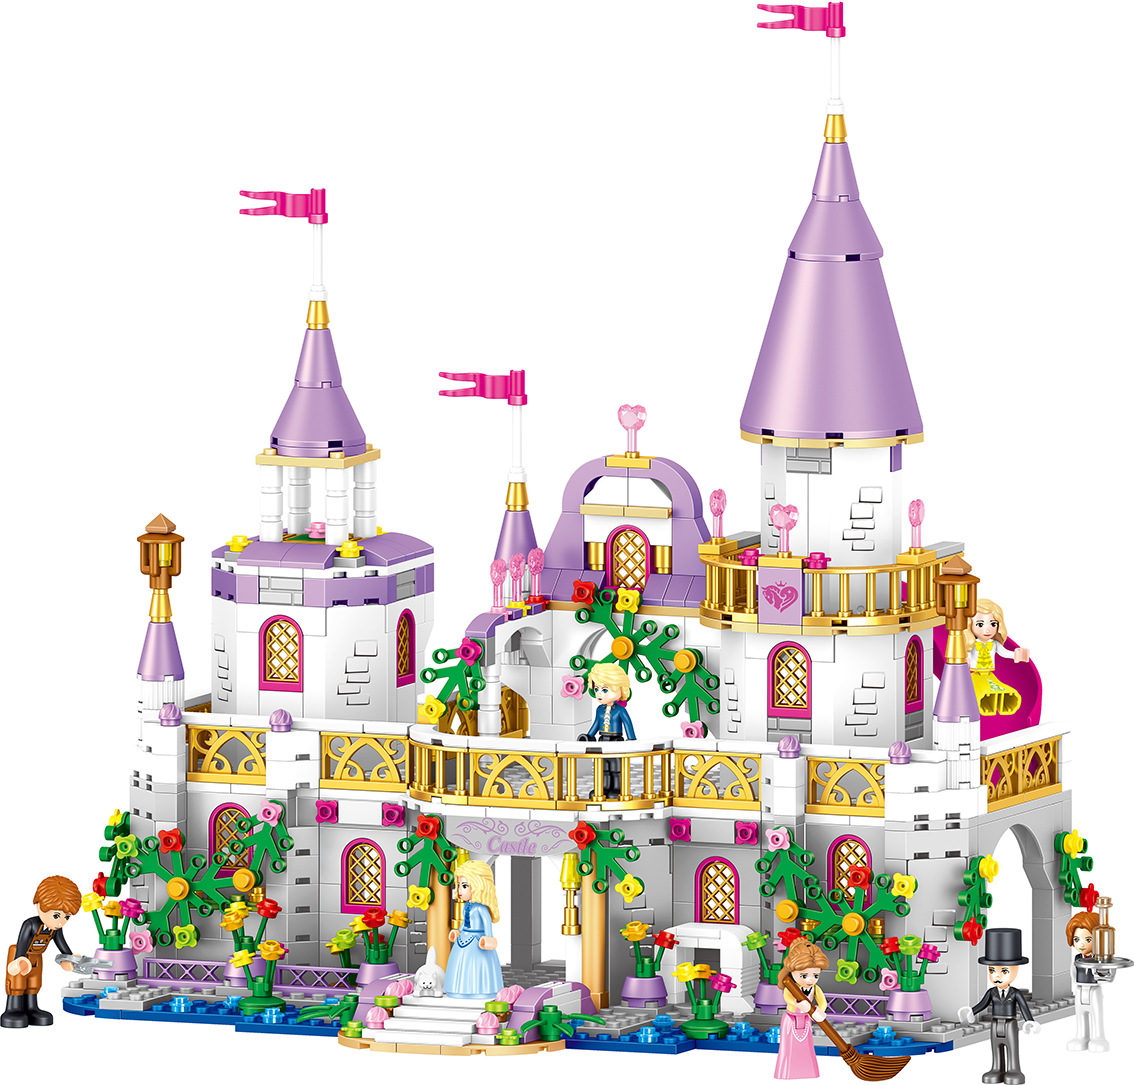 Girls Friends QL1106 731PCS Building Blocks Princess Windsor Castle technic Designer Bricks Legoingly 41148 Toys Girl